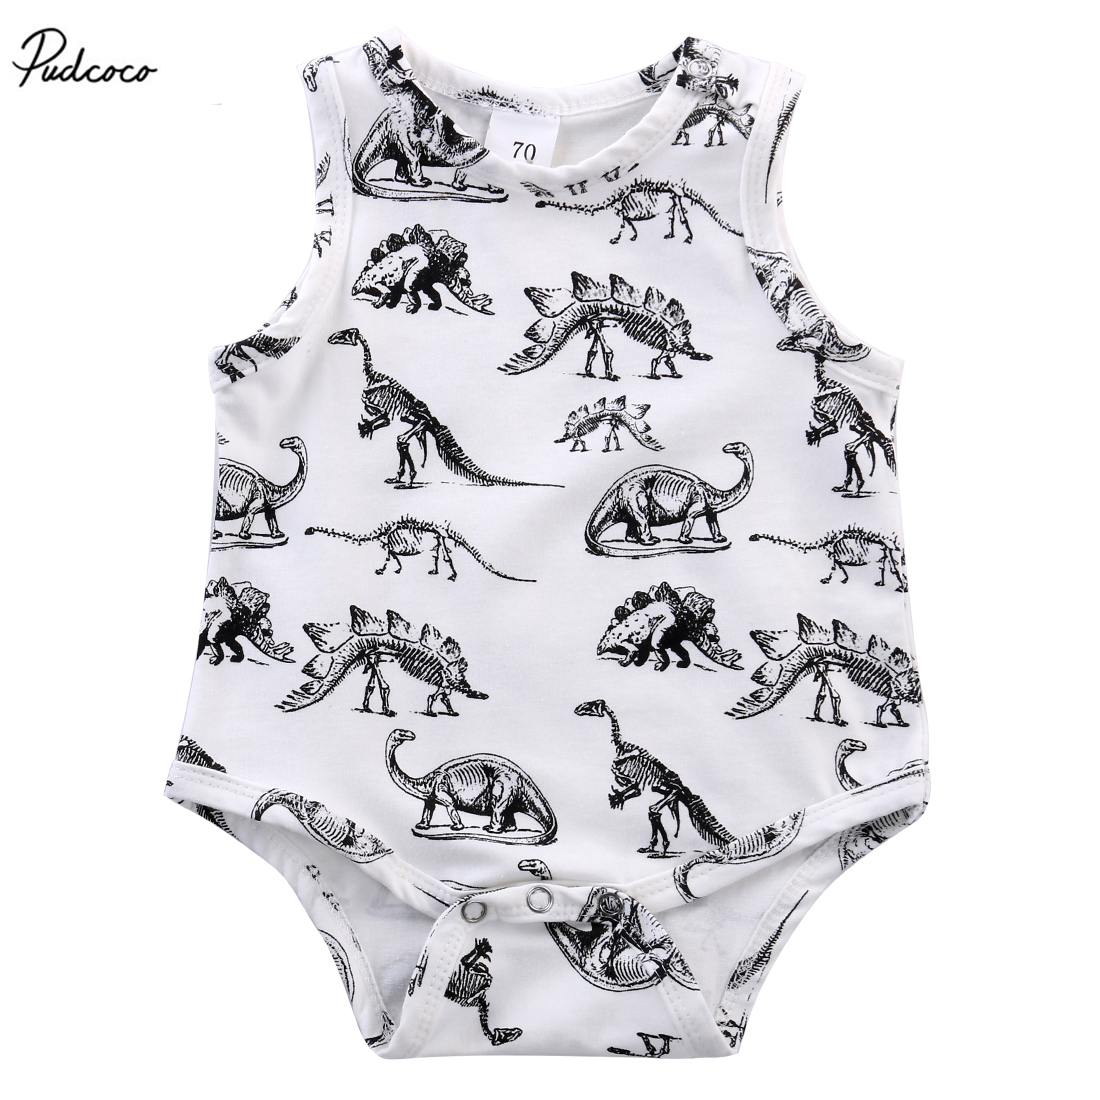 2017 Cute Newborn Infant Baby Girls Boys Clothes Dinosaurs Cotton Romper Sleeveless Jumosuit Outfits